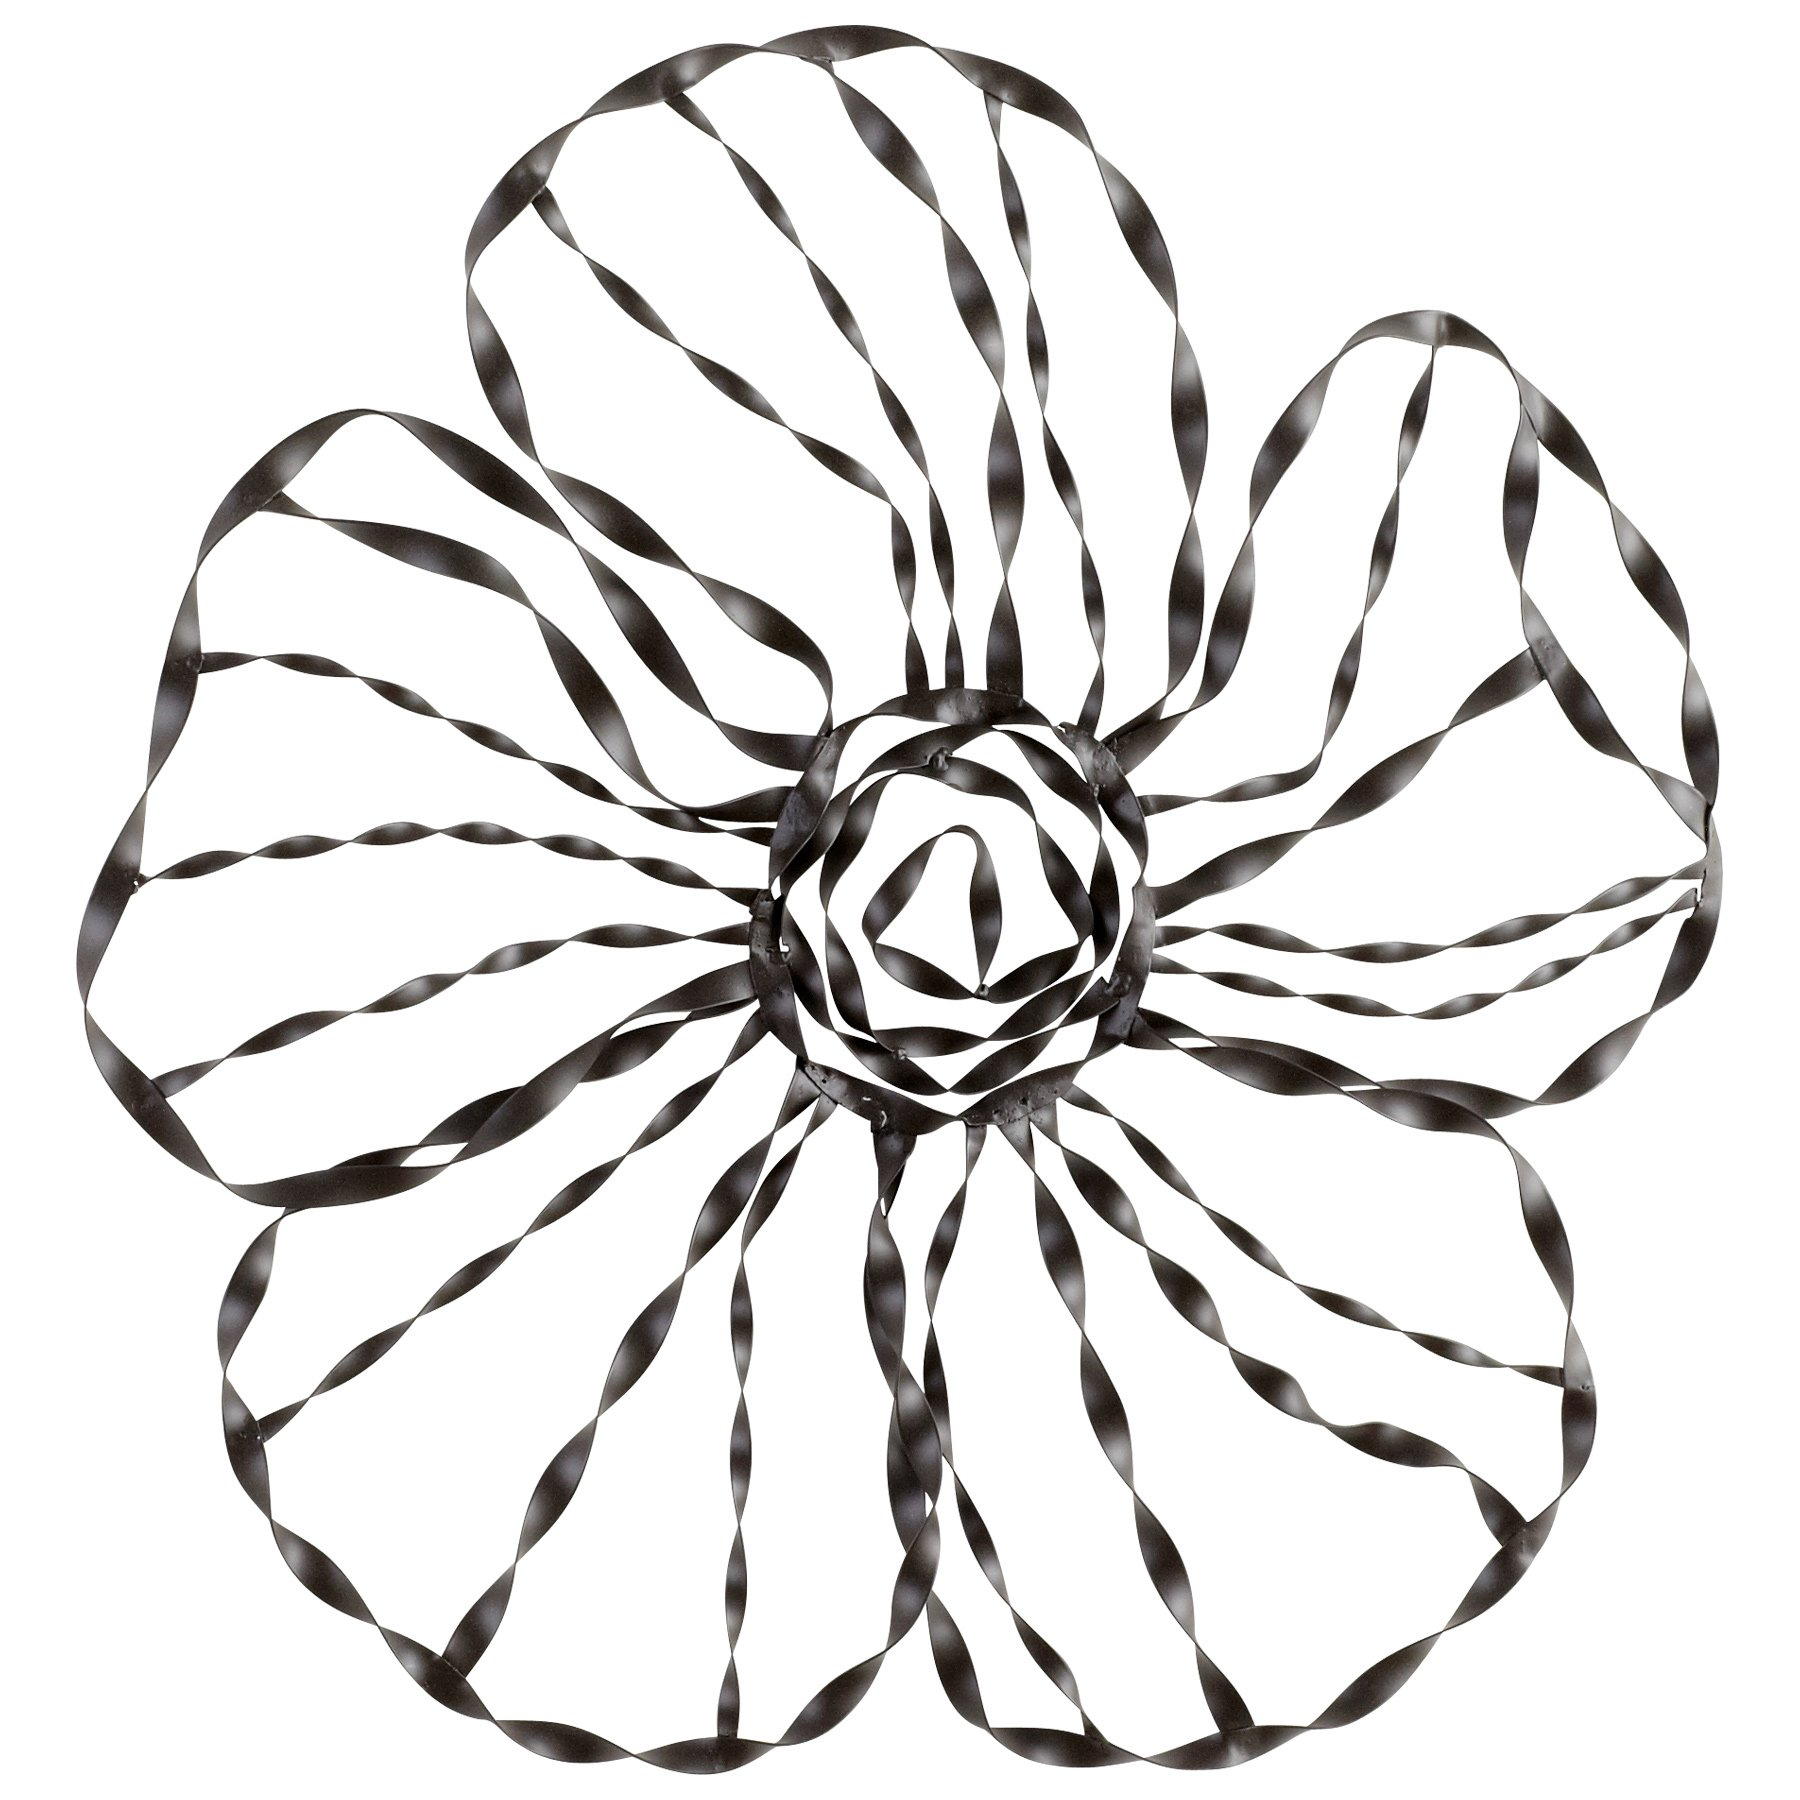 Cyan Design 05840 Petal Pusher Wall Decor,Small Ideal Gift for Wedding, Floral/Floor Vase, Party, Home Decor, Office, Spa